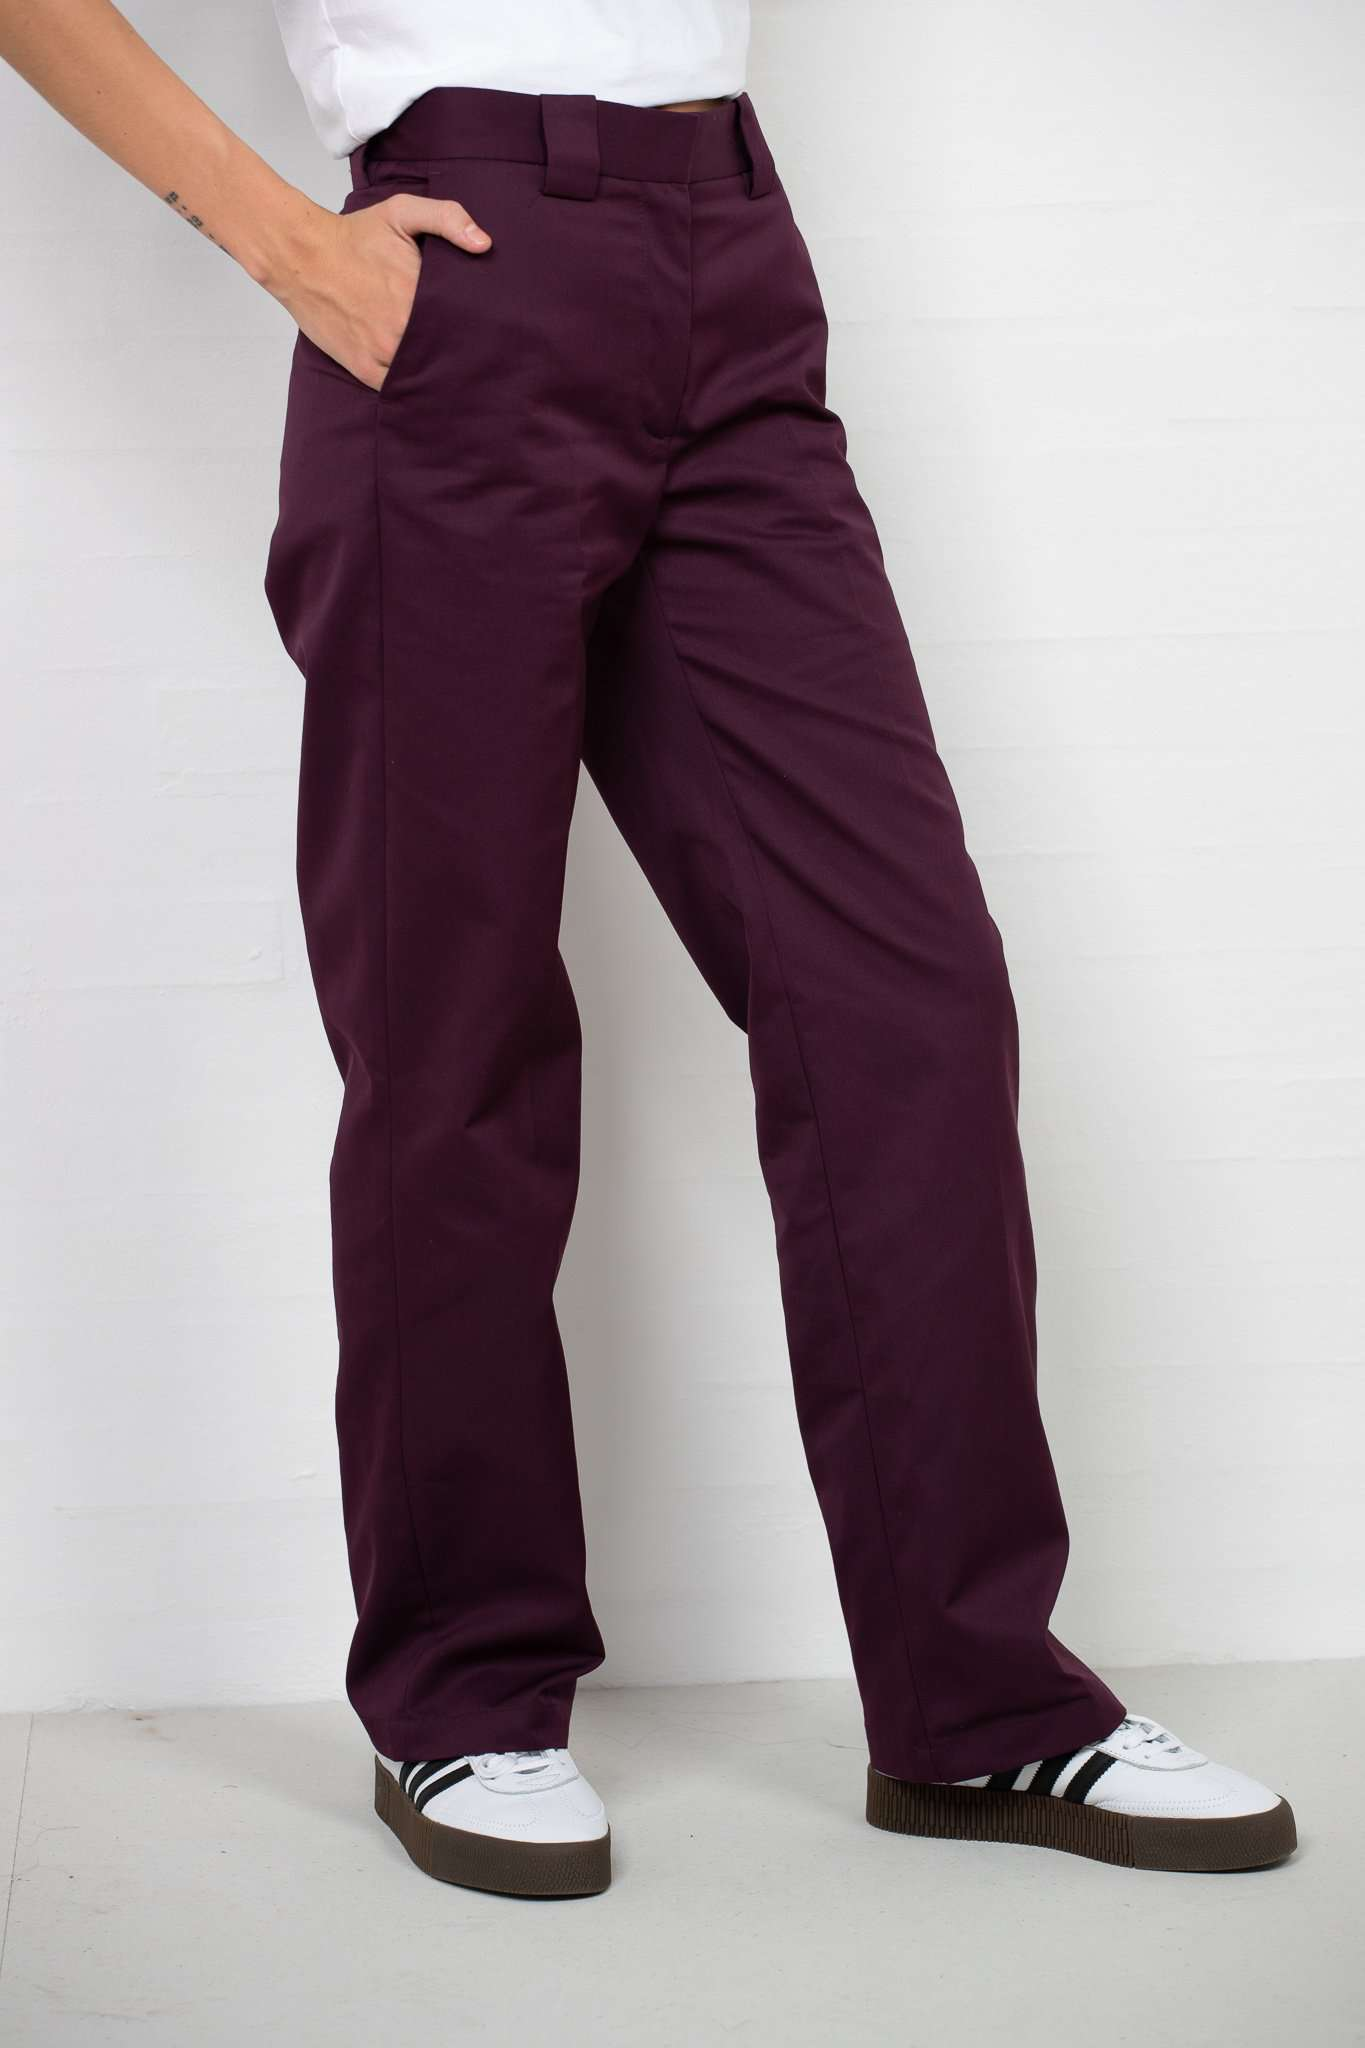 Veneda Trousers - Burgundy - Burgundy/Bordeaux L